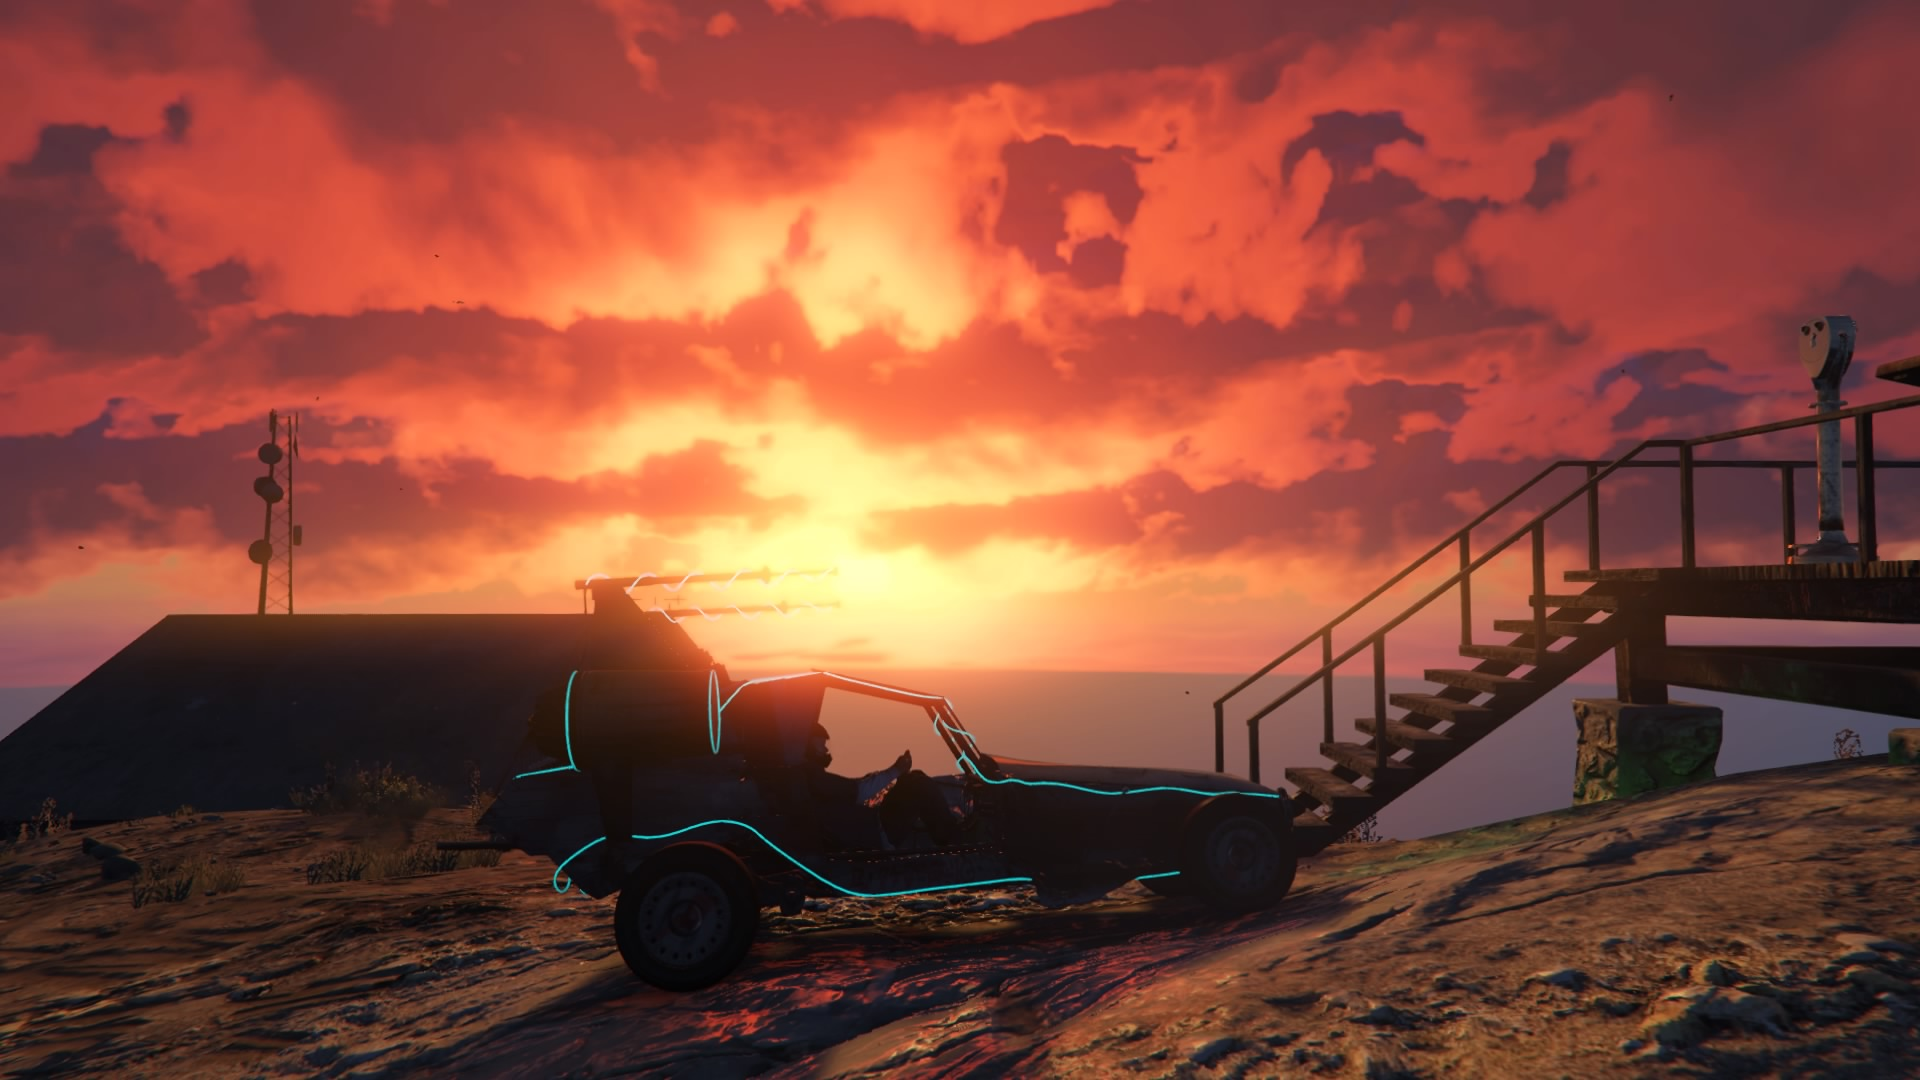 Grand Theft Auto V Full HD Wallpaper and Background Image   1920x1080   ID:659794